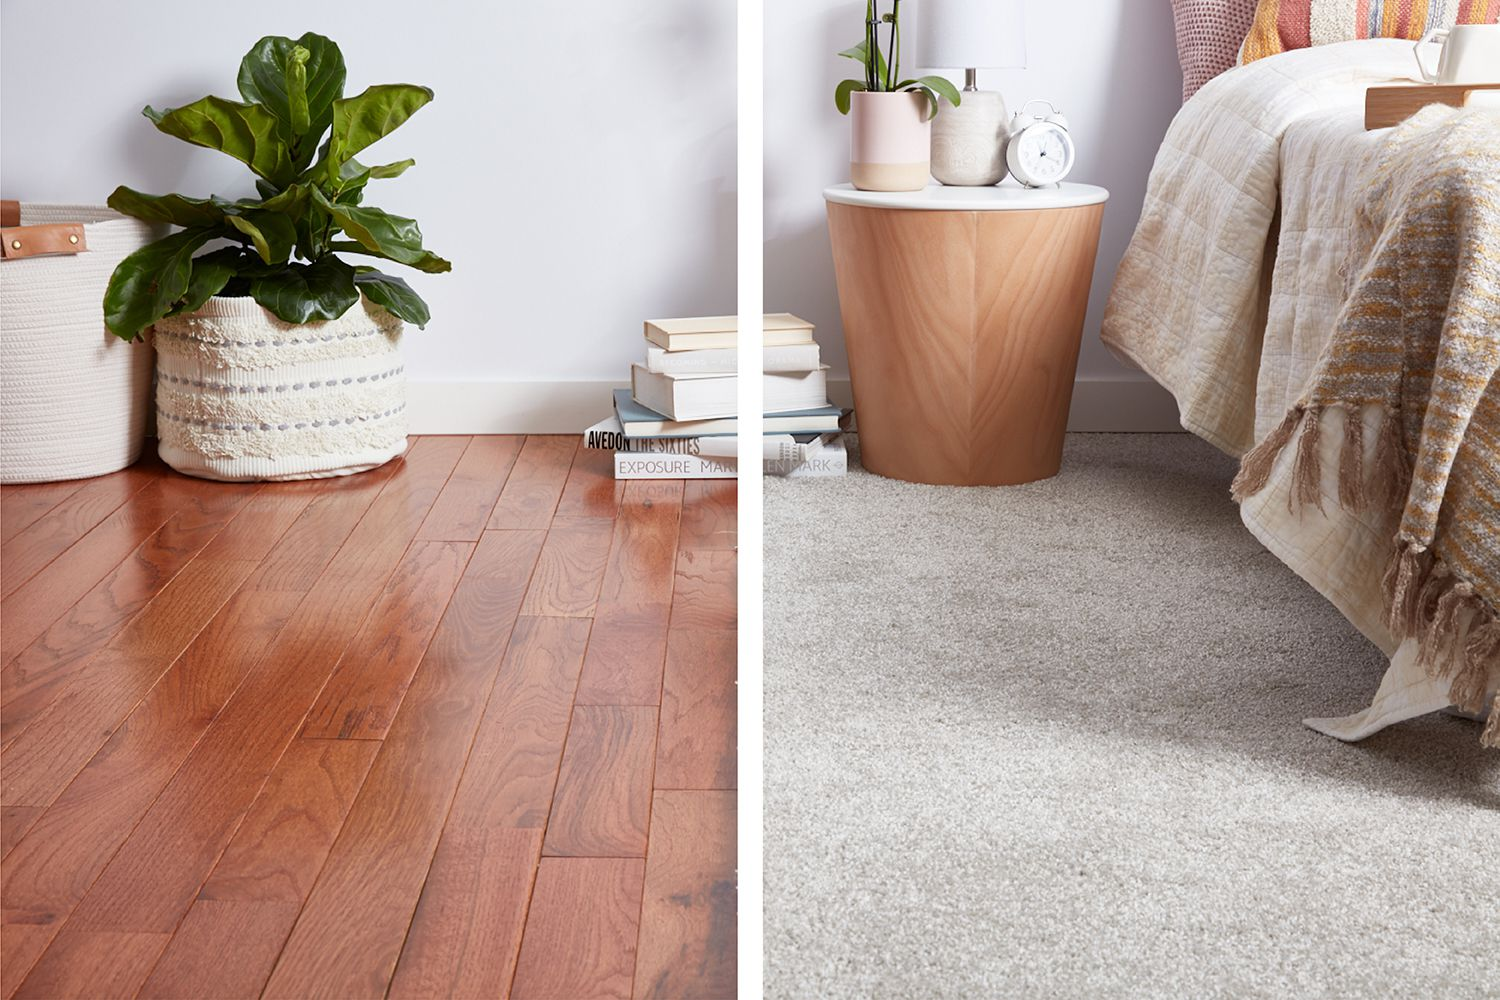 Carpet vs. Hardwood Flooring: Which Is Better